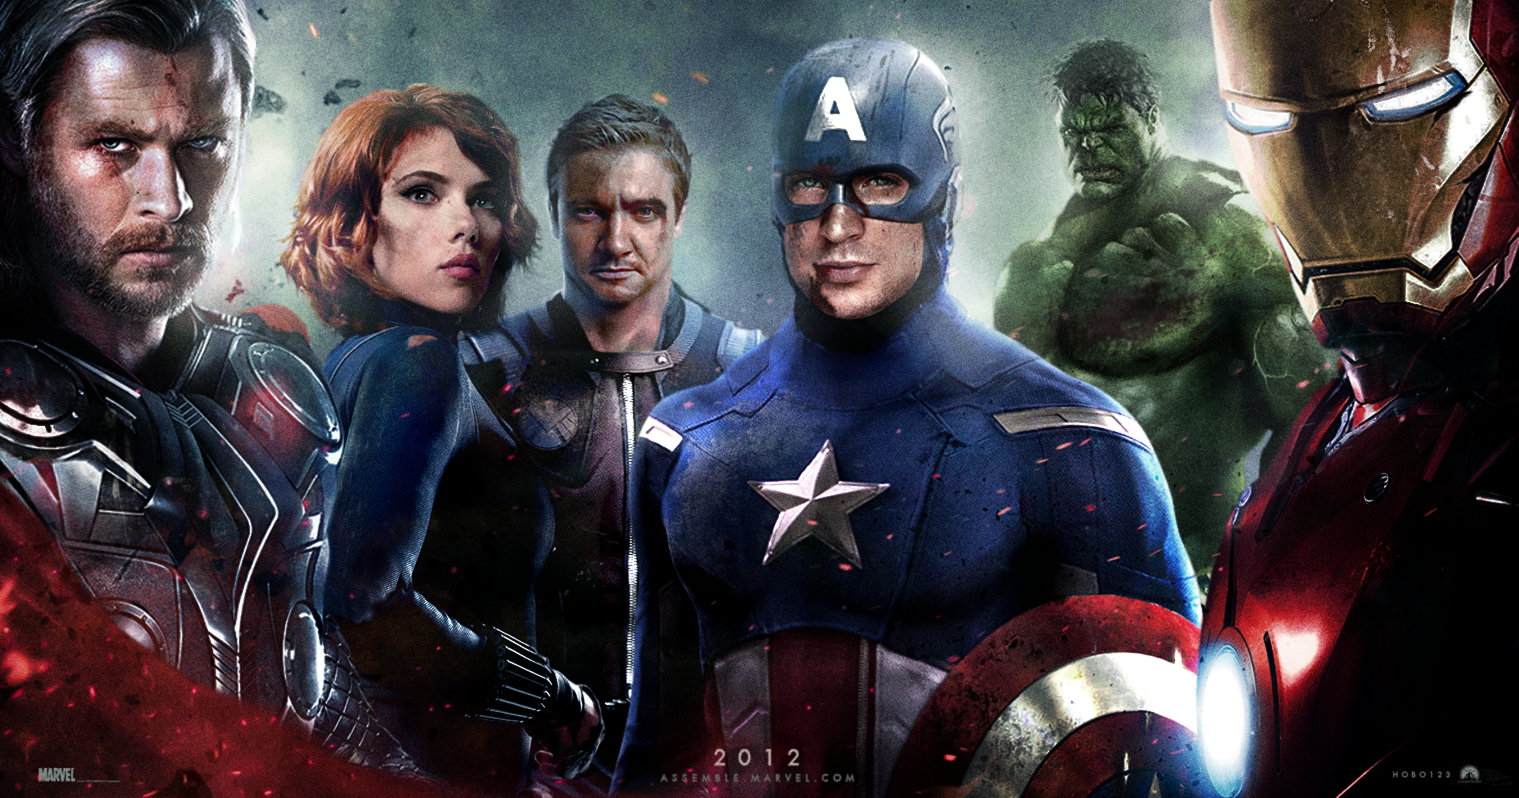 the avengers (2012) – tamil dubbed movie 1080p(torrent download